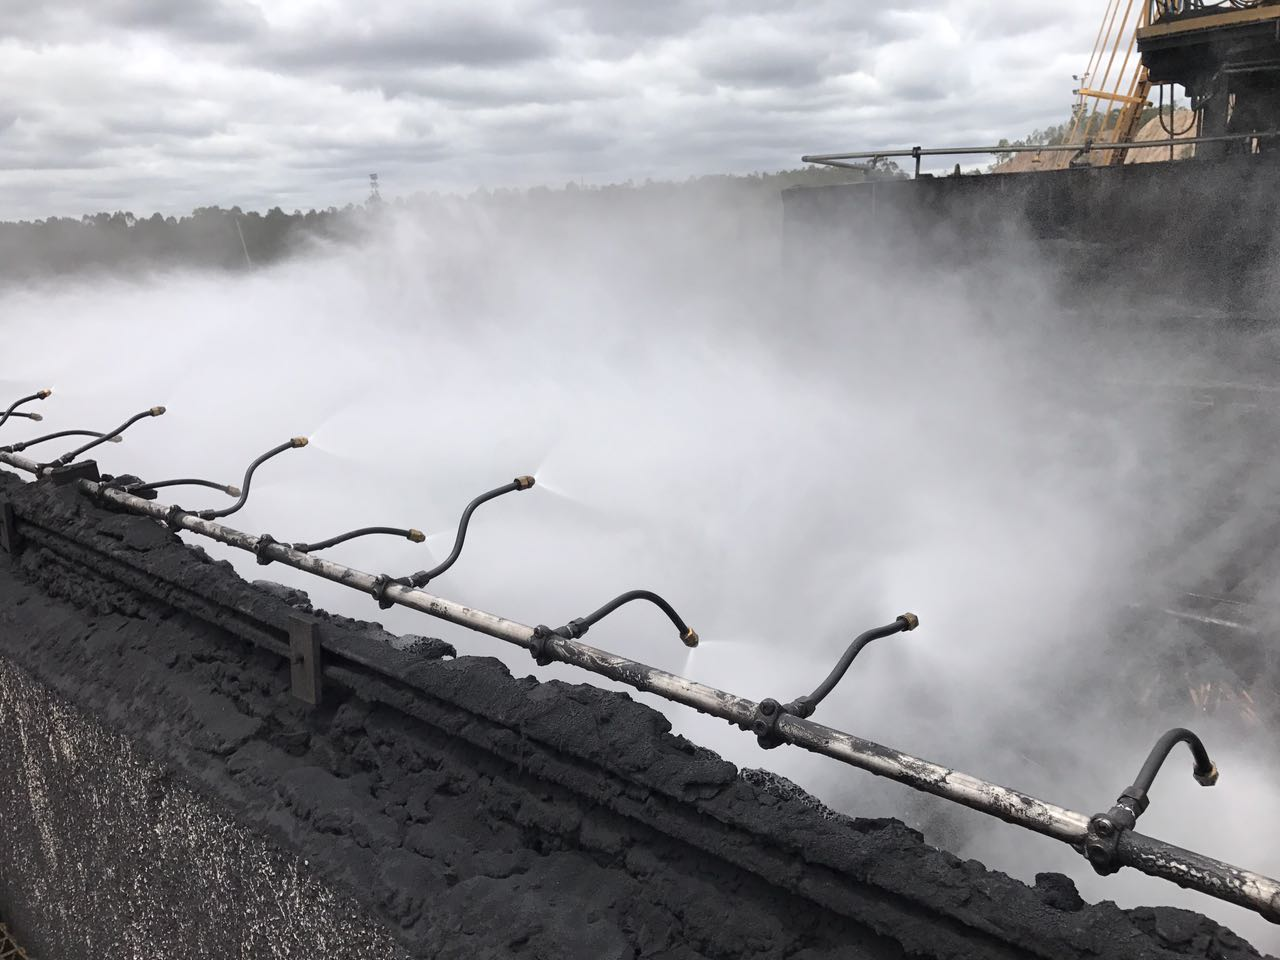 Custom Dust Suppression System in action